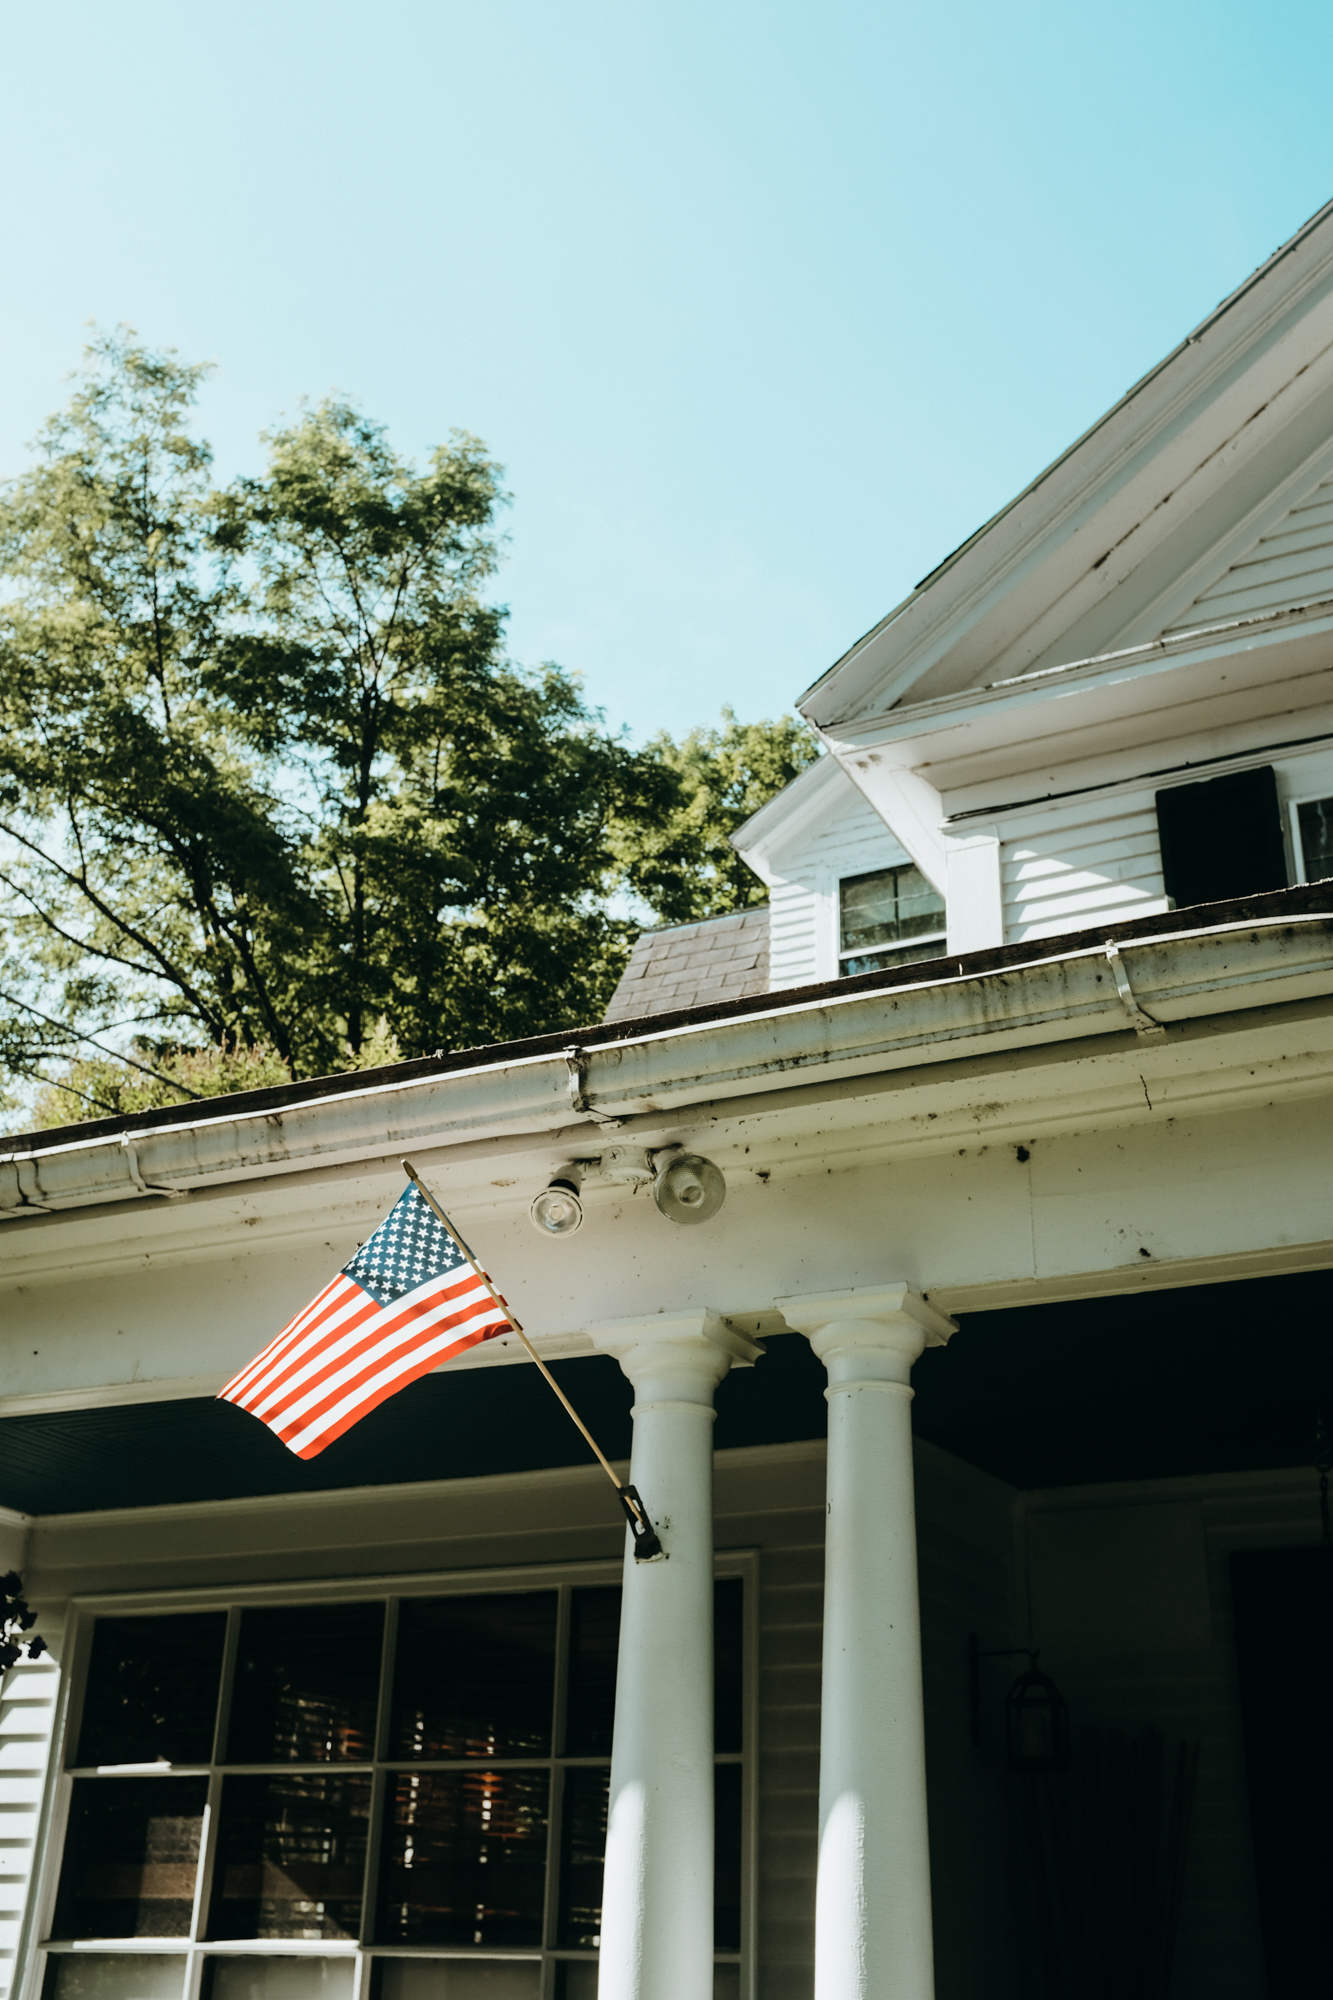 An American flag blows in the wind on the front of the Monadnock Inn, New Hampshire